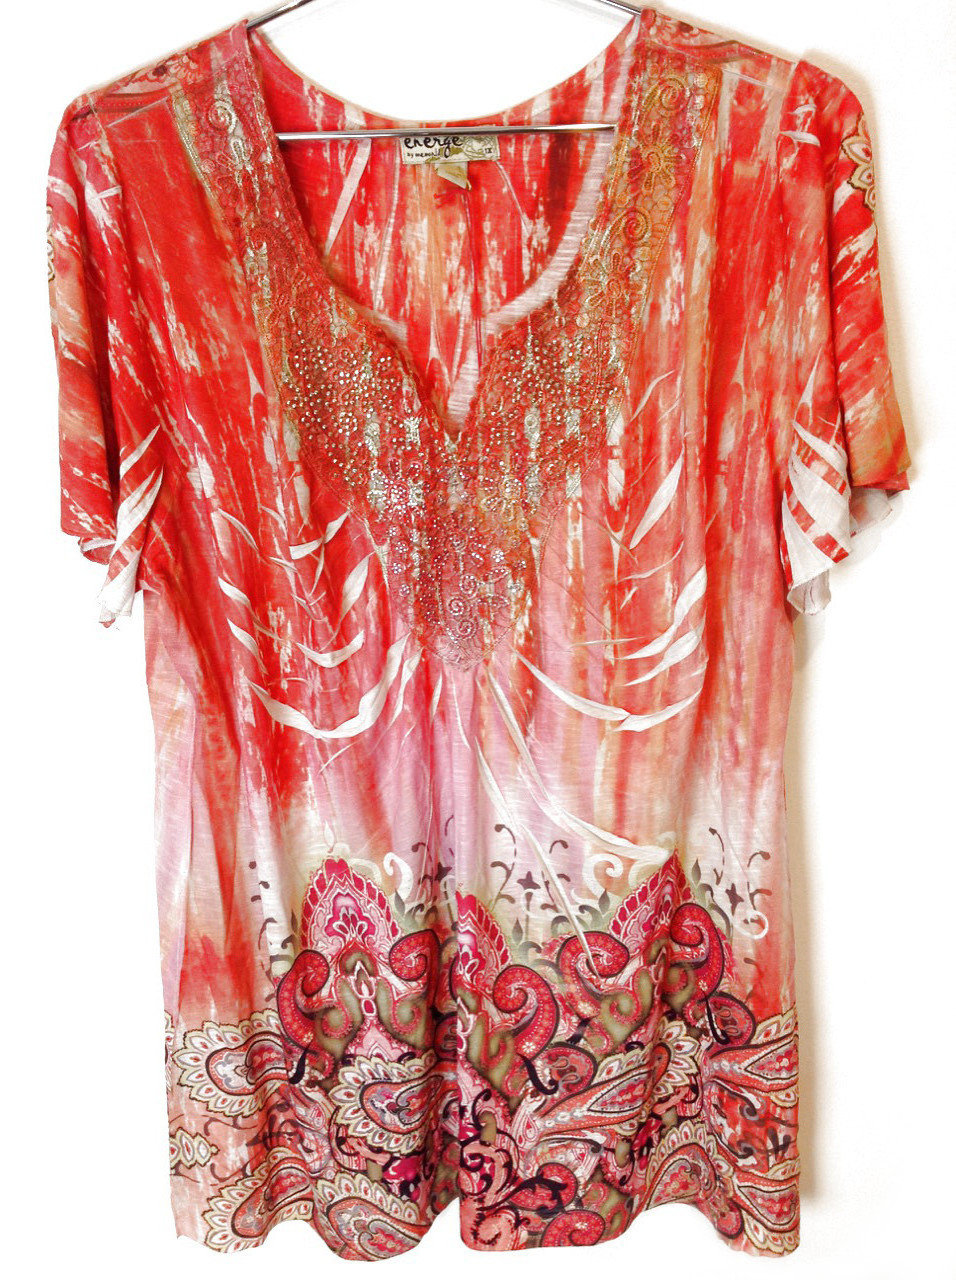 New-One-World-Womens-Plus-Size-Printed-Blouse-Flutter-Sleeve-Embellished-Top-44 thumbnail 2